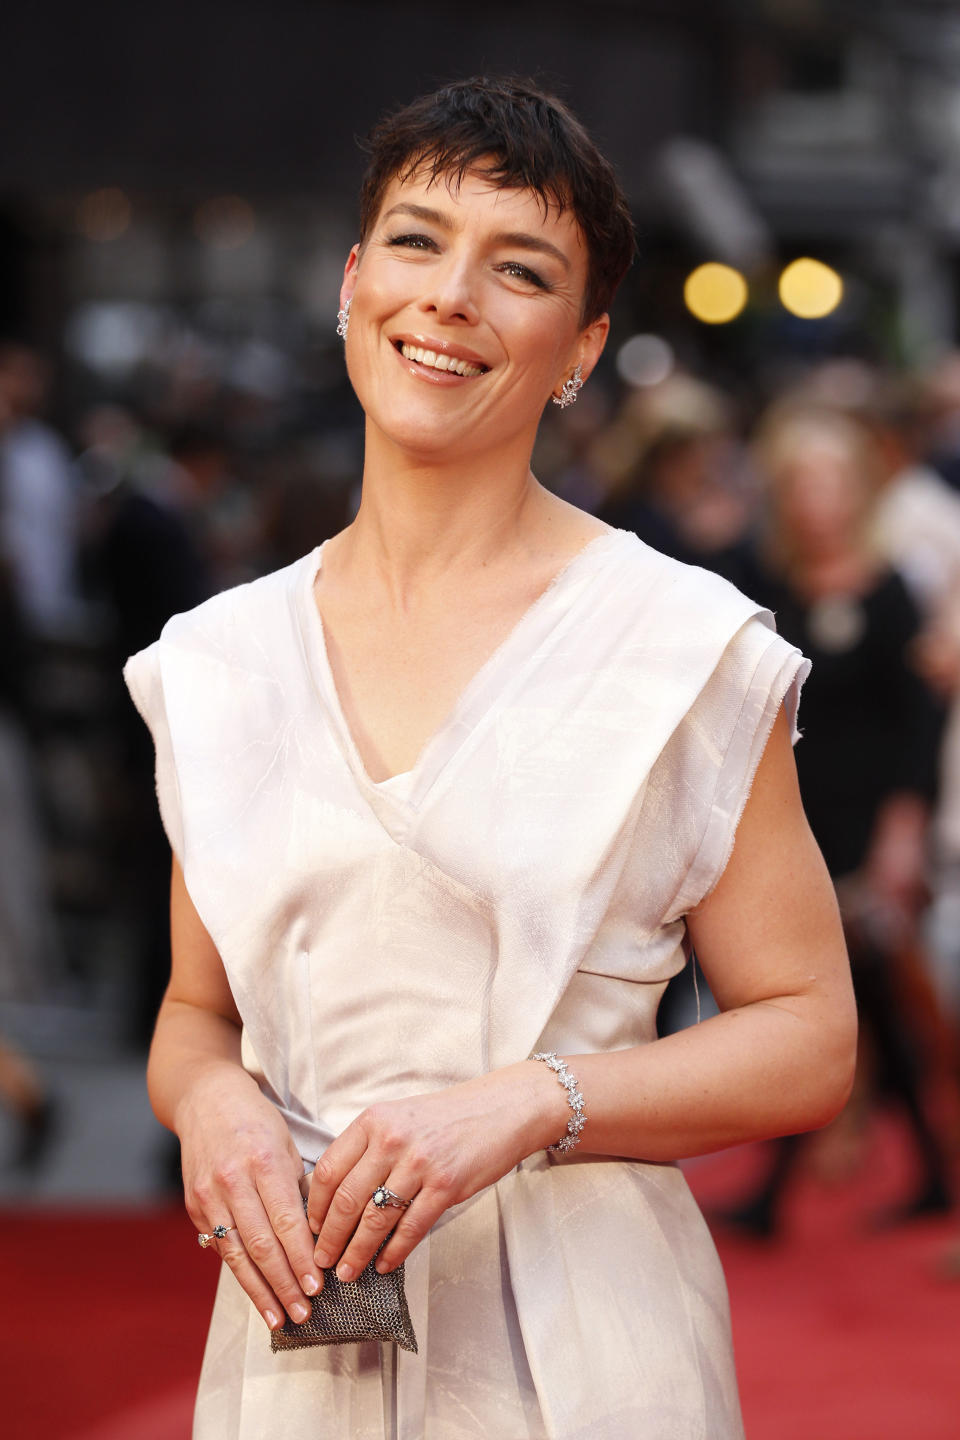 Cast member British actress Olivia Williams arrives for the world premiere of Anna Karenina in London, Tuesday, Sept. 4, 2012. (AP Photo/Sang Tan)